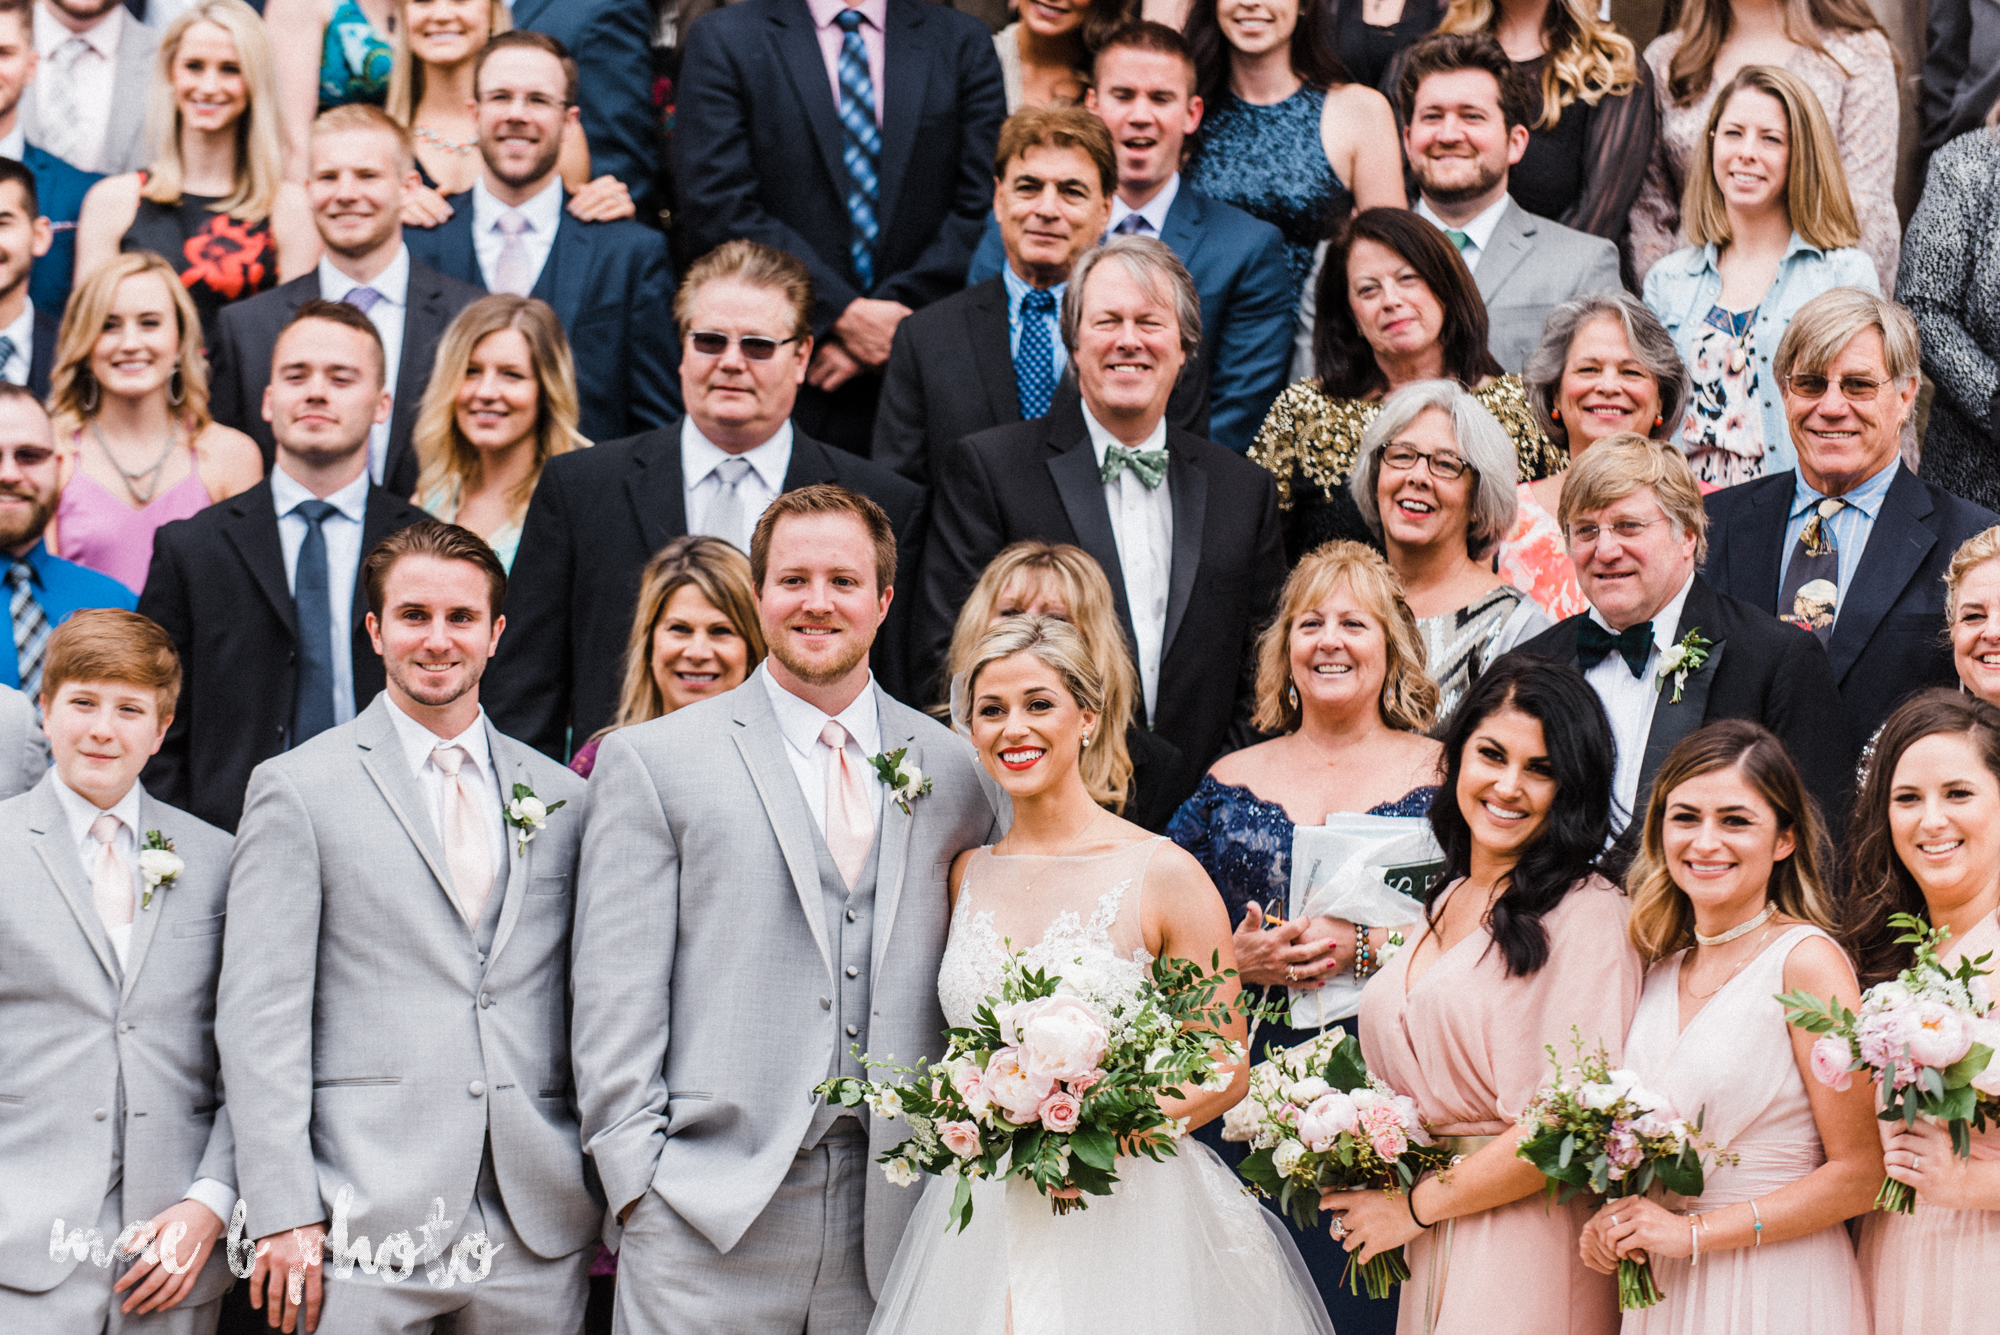 jen and braedy's charming fairytale pittsburgh wedding at the william penn hotel in downtown pittsburgh pa photographed by cleveland wedding photographer mae b photo-1.jpg